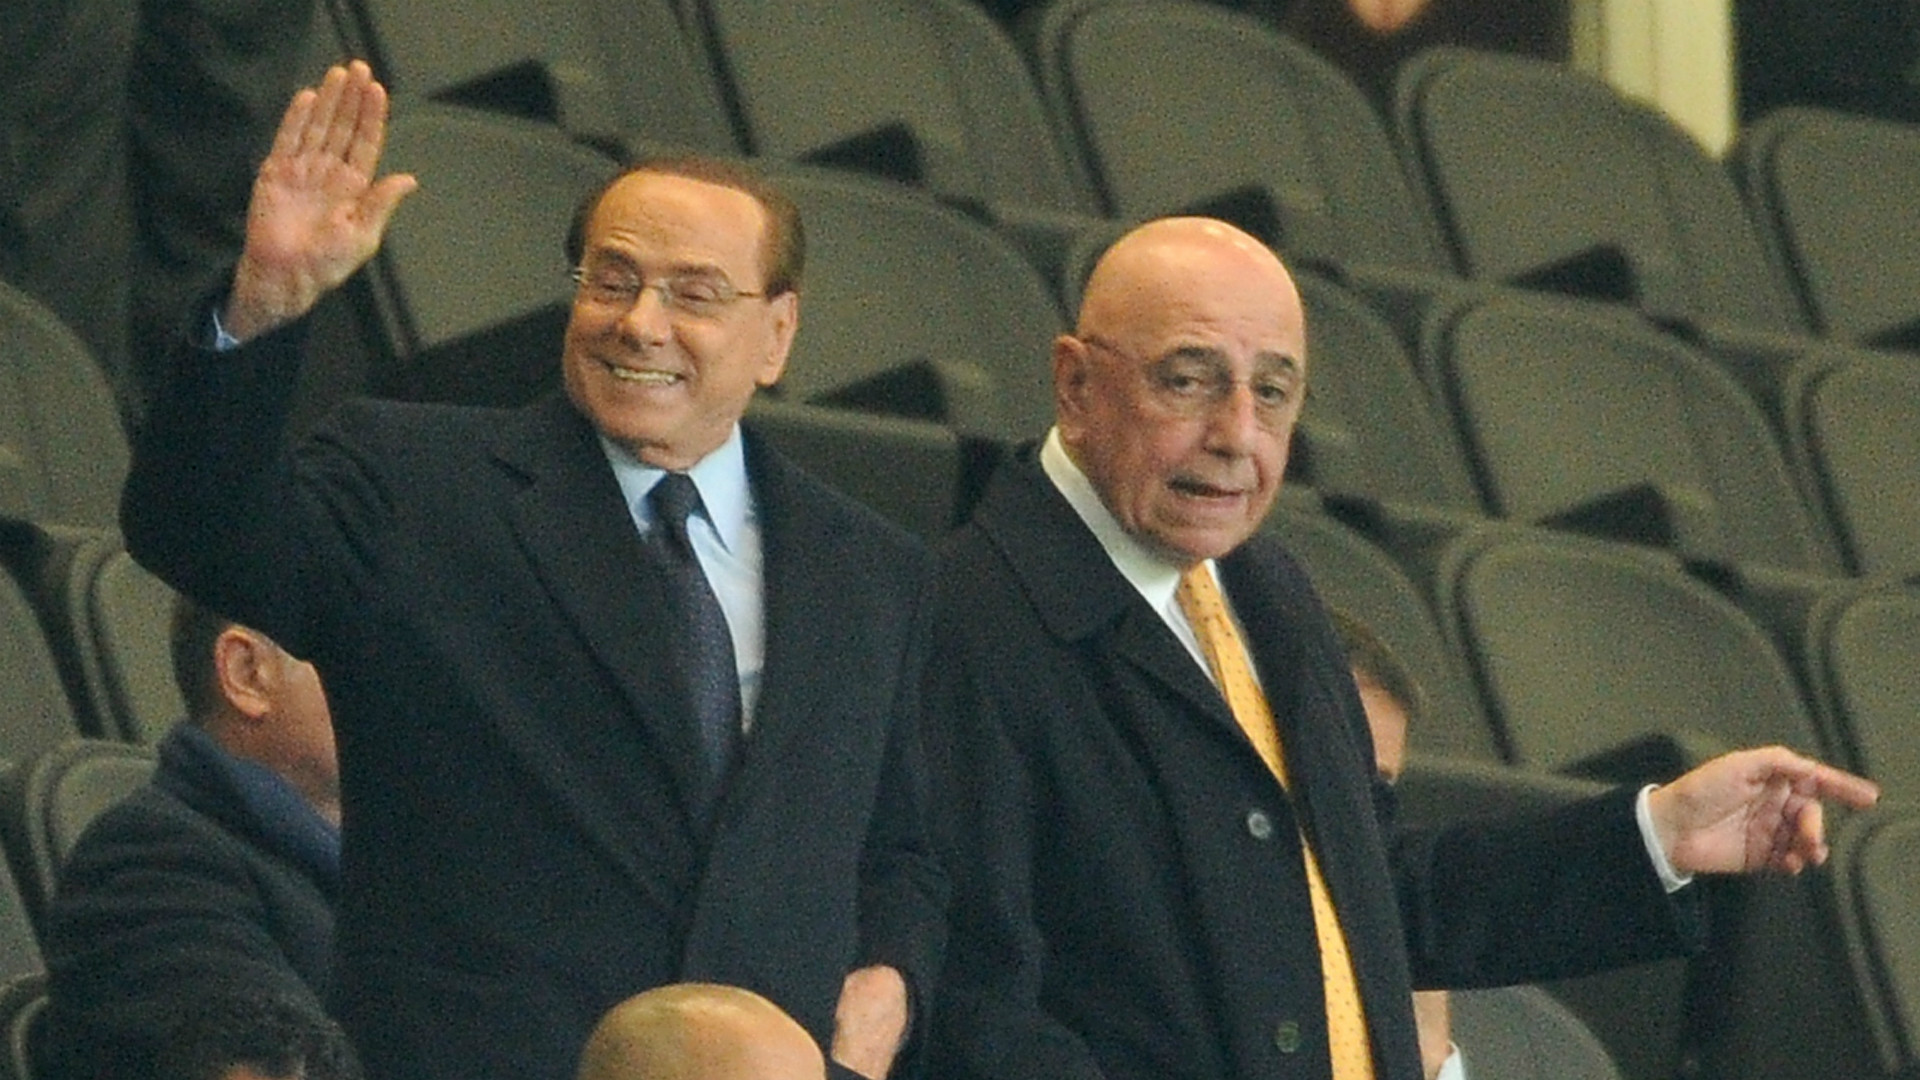 Berlusconi - Galliani